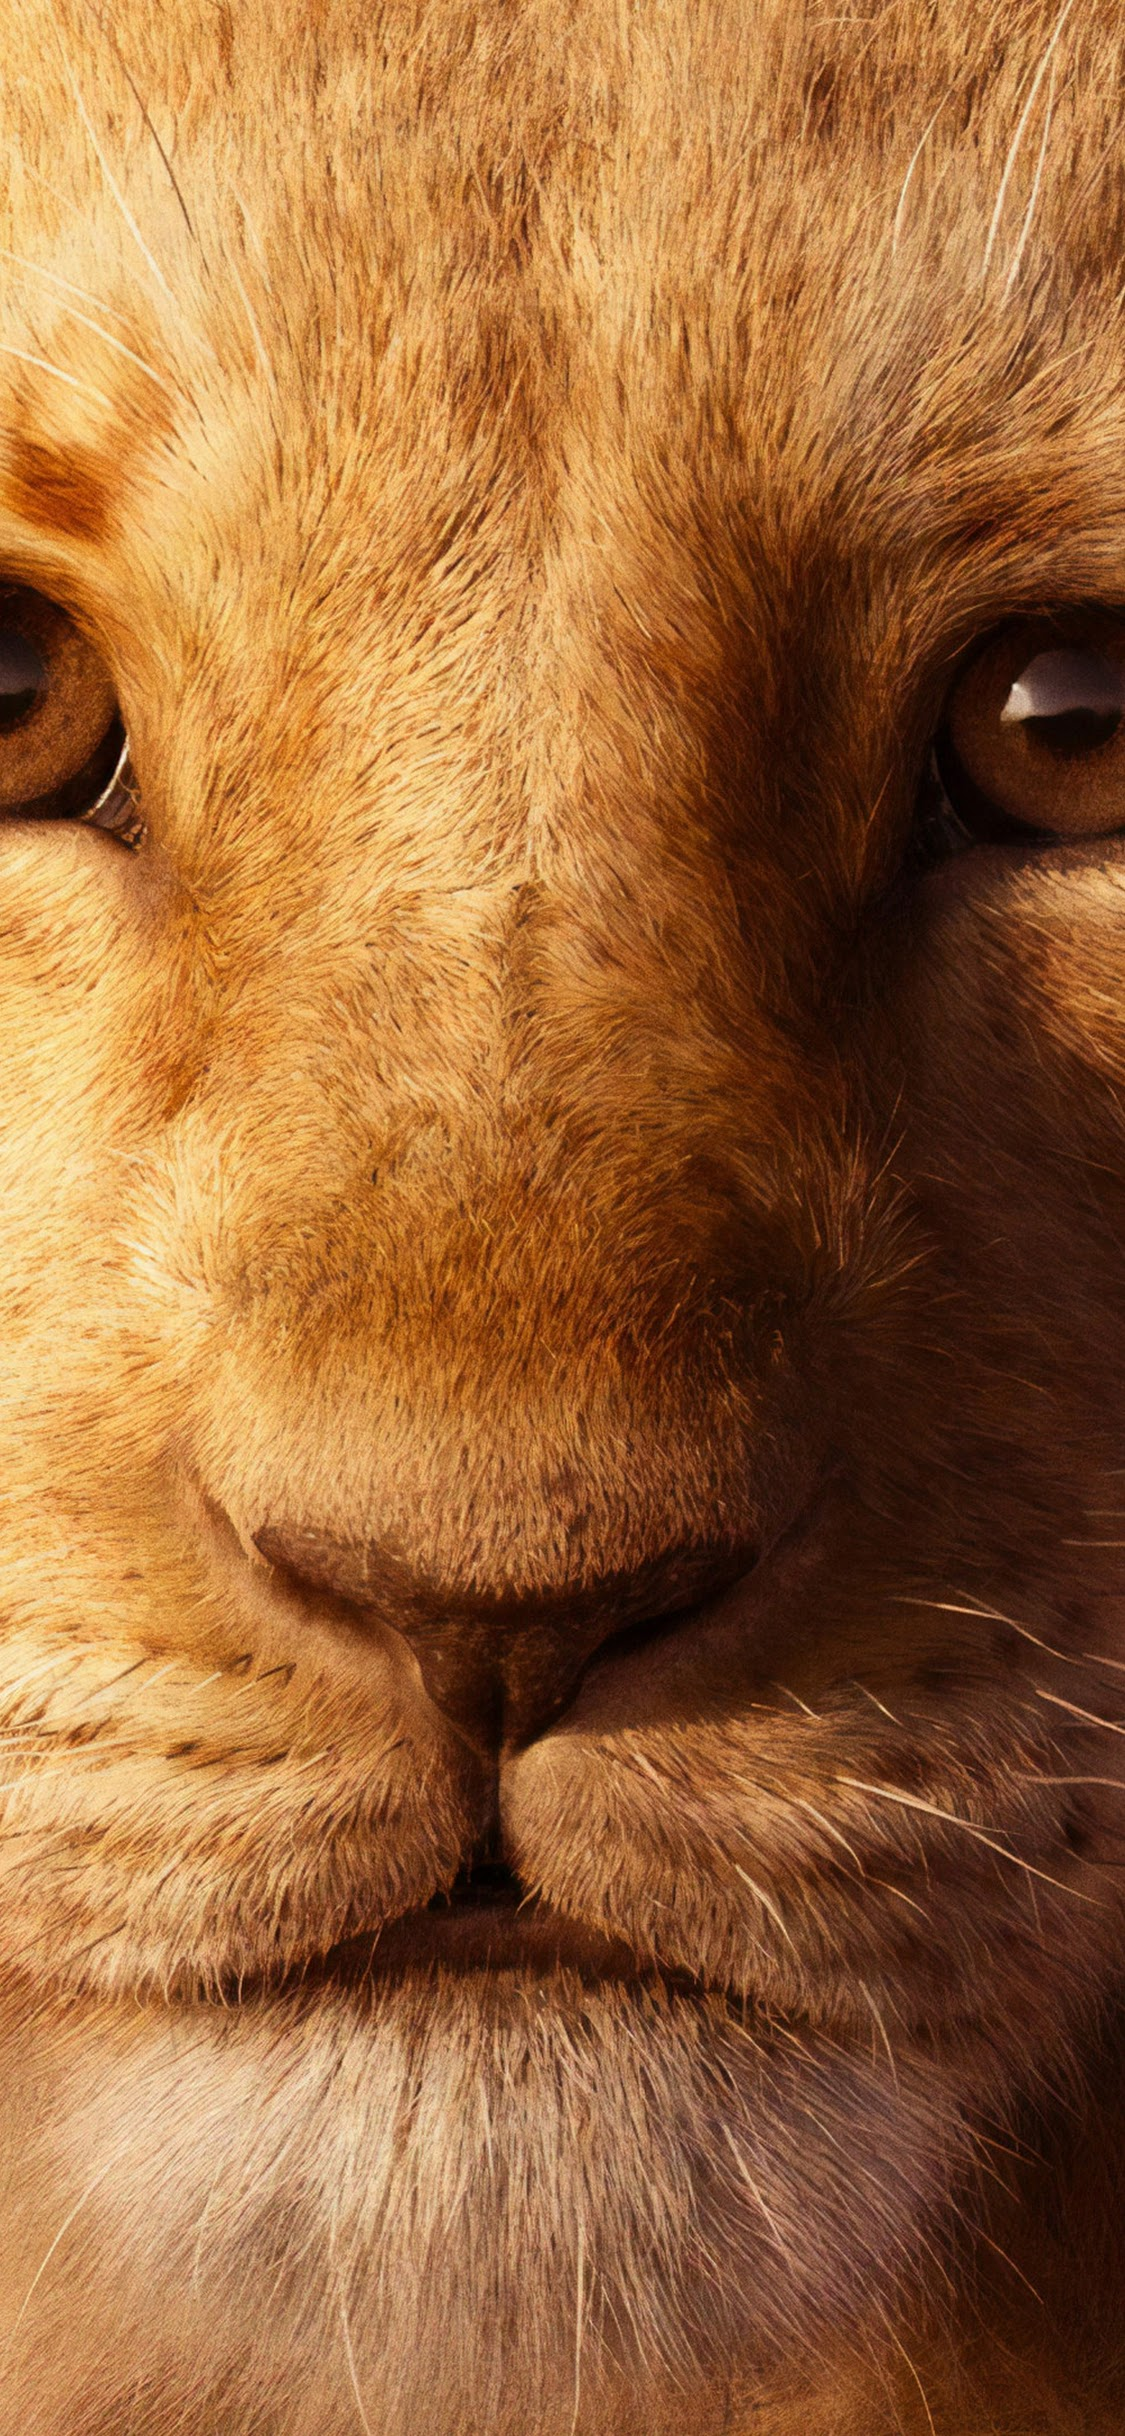 The Lion King 2019 Simba 4k Wallpaper 4